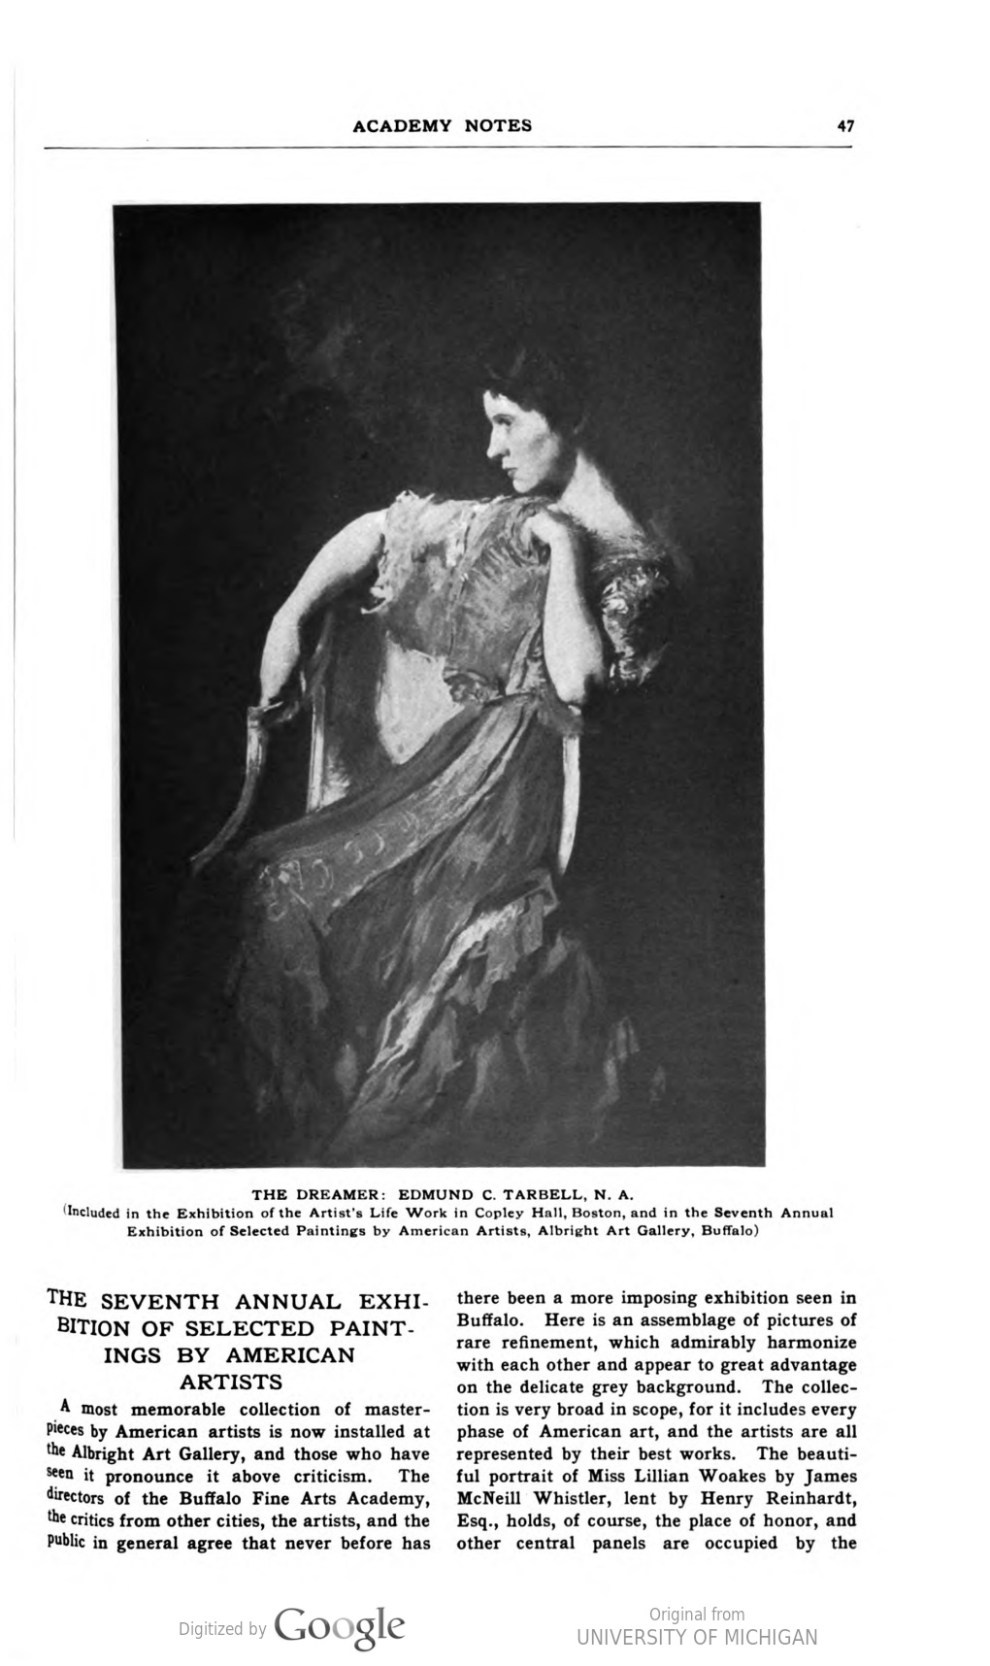 """Academy Notes, Buffalo Fine Arts Academy, Albright Art Gallery, Buffalo, NY, """"The Seventh Annual Exhibition of Selected Paintings by American Artists"""", July, 1912, Volume 7, Number 3, page 47-52, not illustrated."""